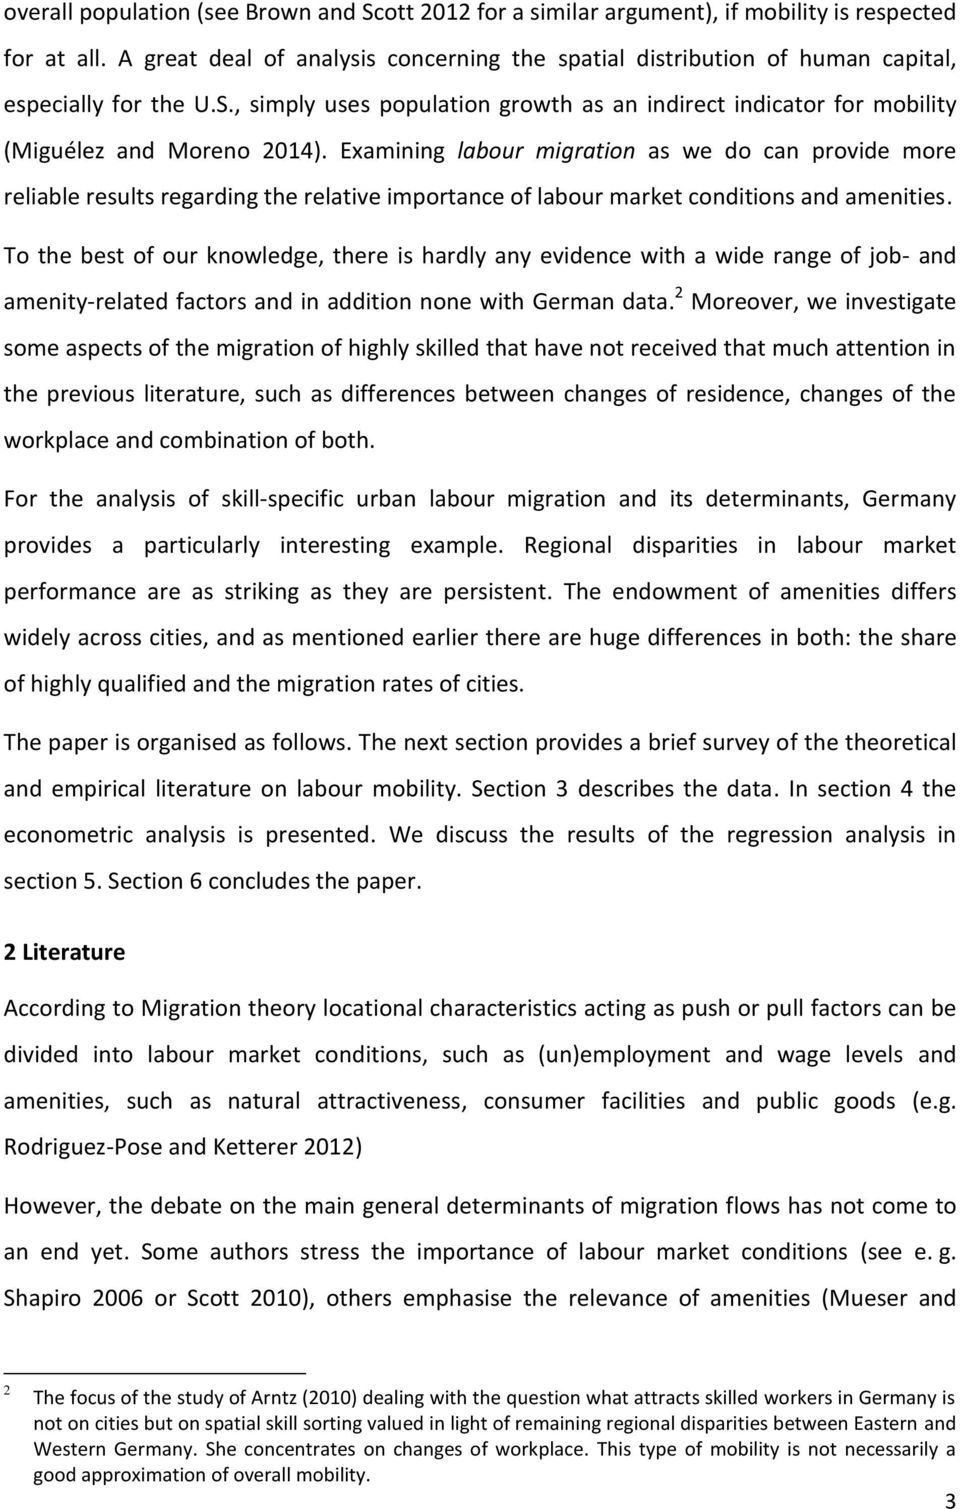 Examining labour migration as we do can provide more reliable results regarding the relative importance of labour market conditions and amenities.